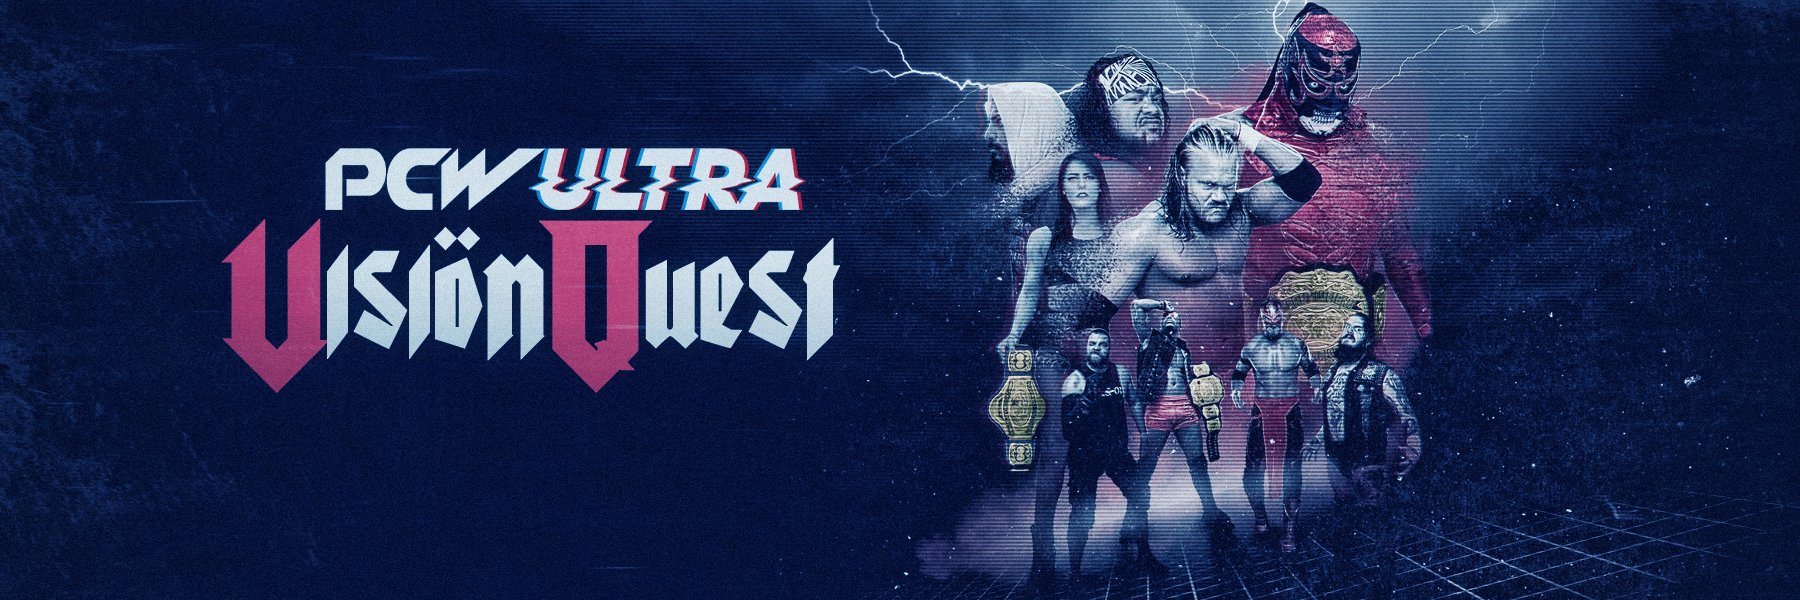 PCW ULTRA | VISION QUEST: Subscribe $4.99 mo. // Rent $2.99 // Buy $9.99